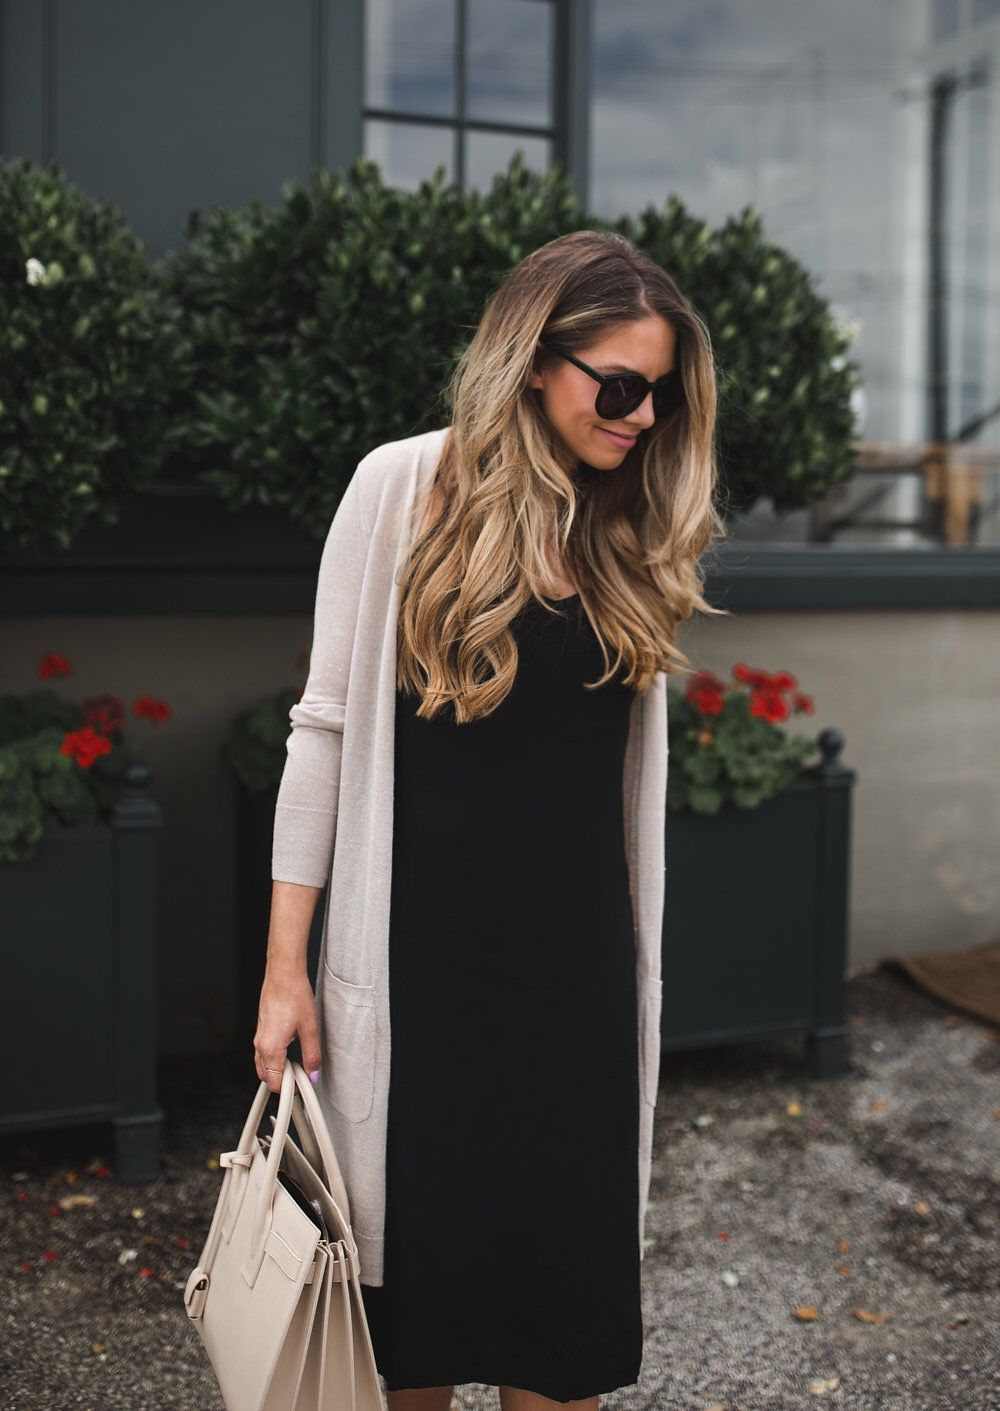 How I Style A Slip Dress The Teacher Diva A Dallas Fashion Blog Featuring Beauty Lifestyle Black Dress Outfit Casual Black Dresses Casual Fashion [ 1411 x 1000 Pixel ]